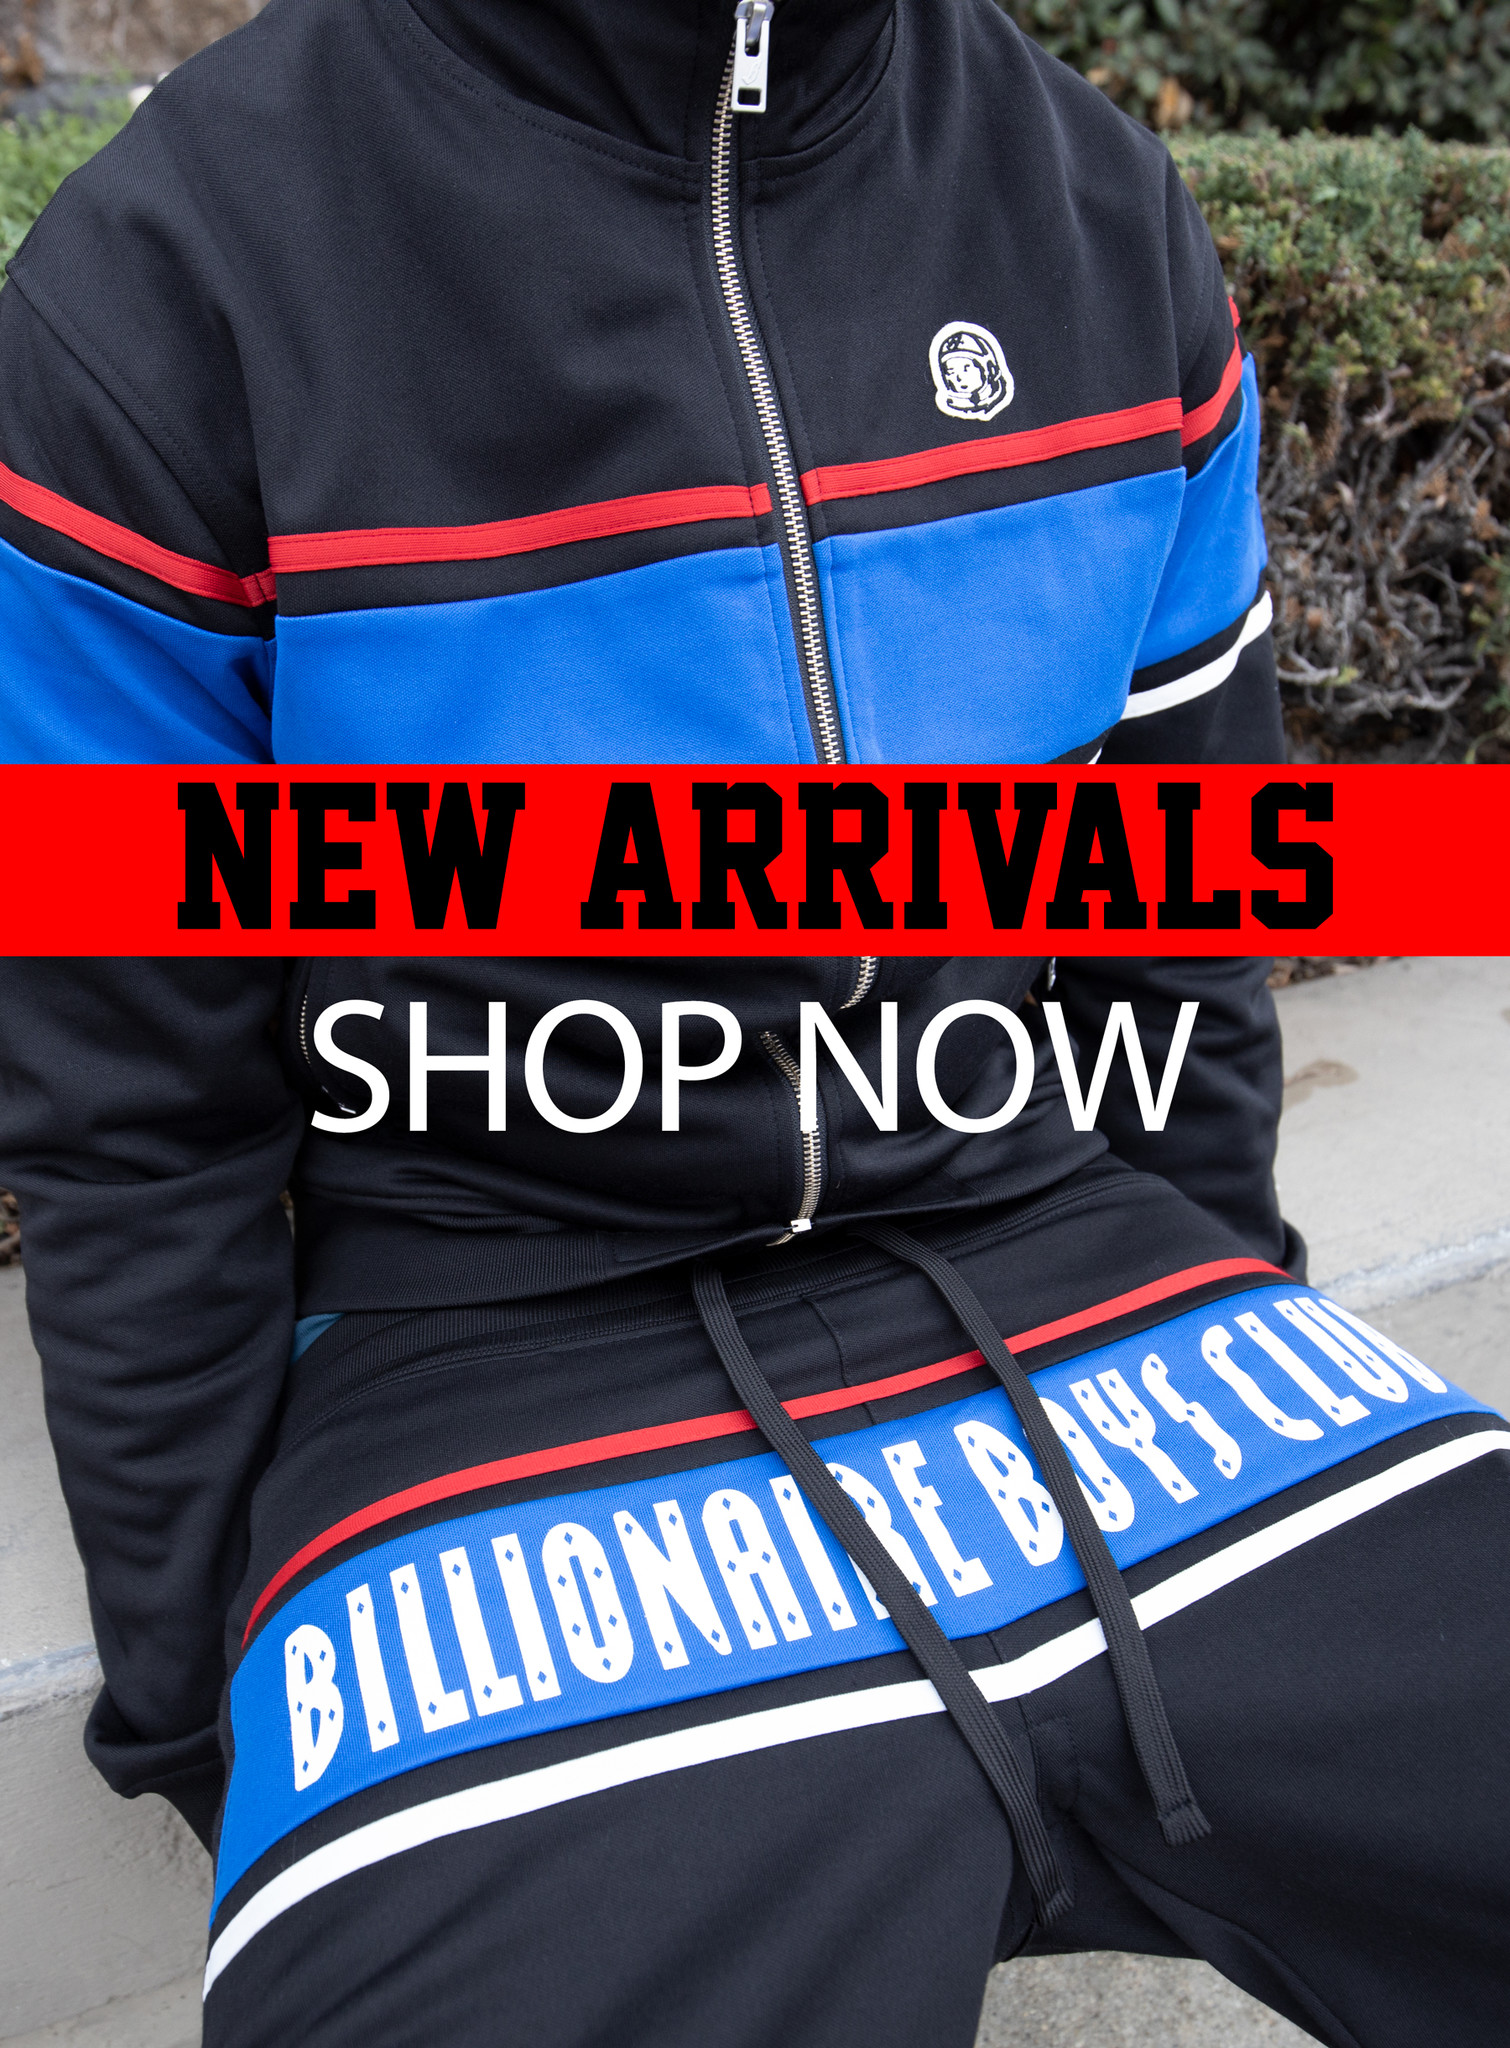 46eec1bb971 Hidden Hype Clothing · Billionaire Boys Club New Arrivals. Kappa New  Arrivals